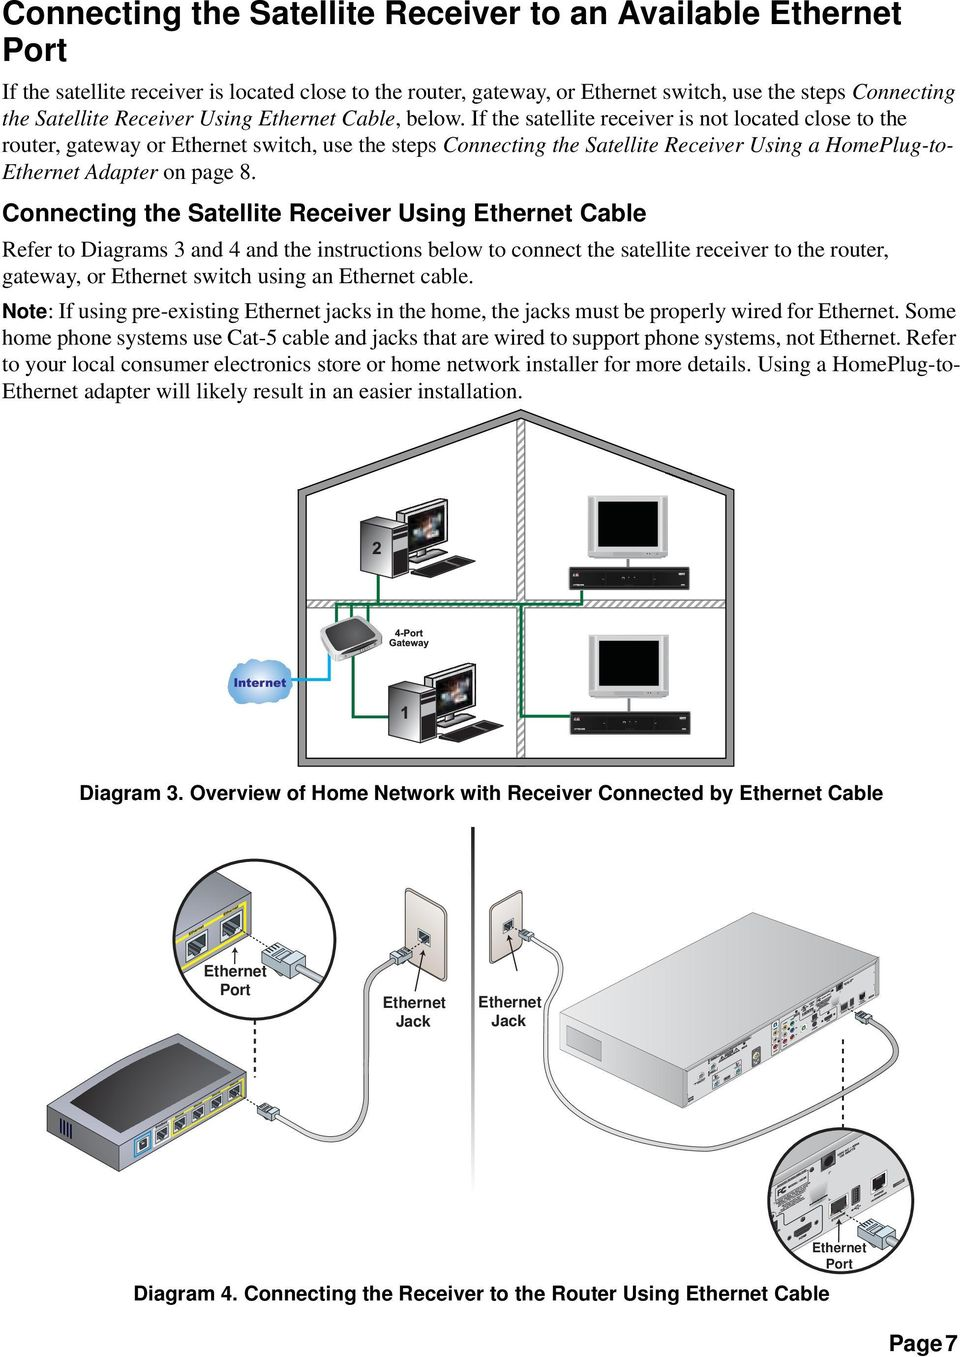 Home Network Installation Instructions Pdf Phone Wiring Diagram Connecting The Satellite Receiver Using Cable Refer To Diagrams 3 And 4 Below